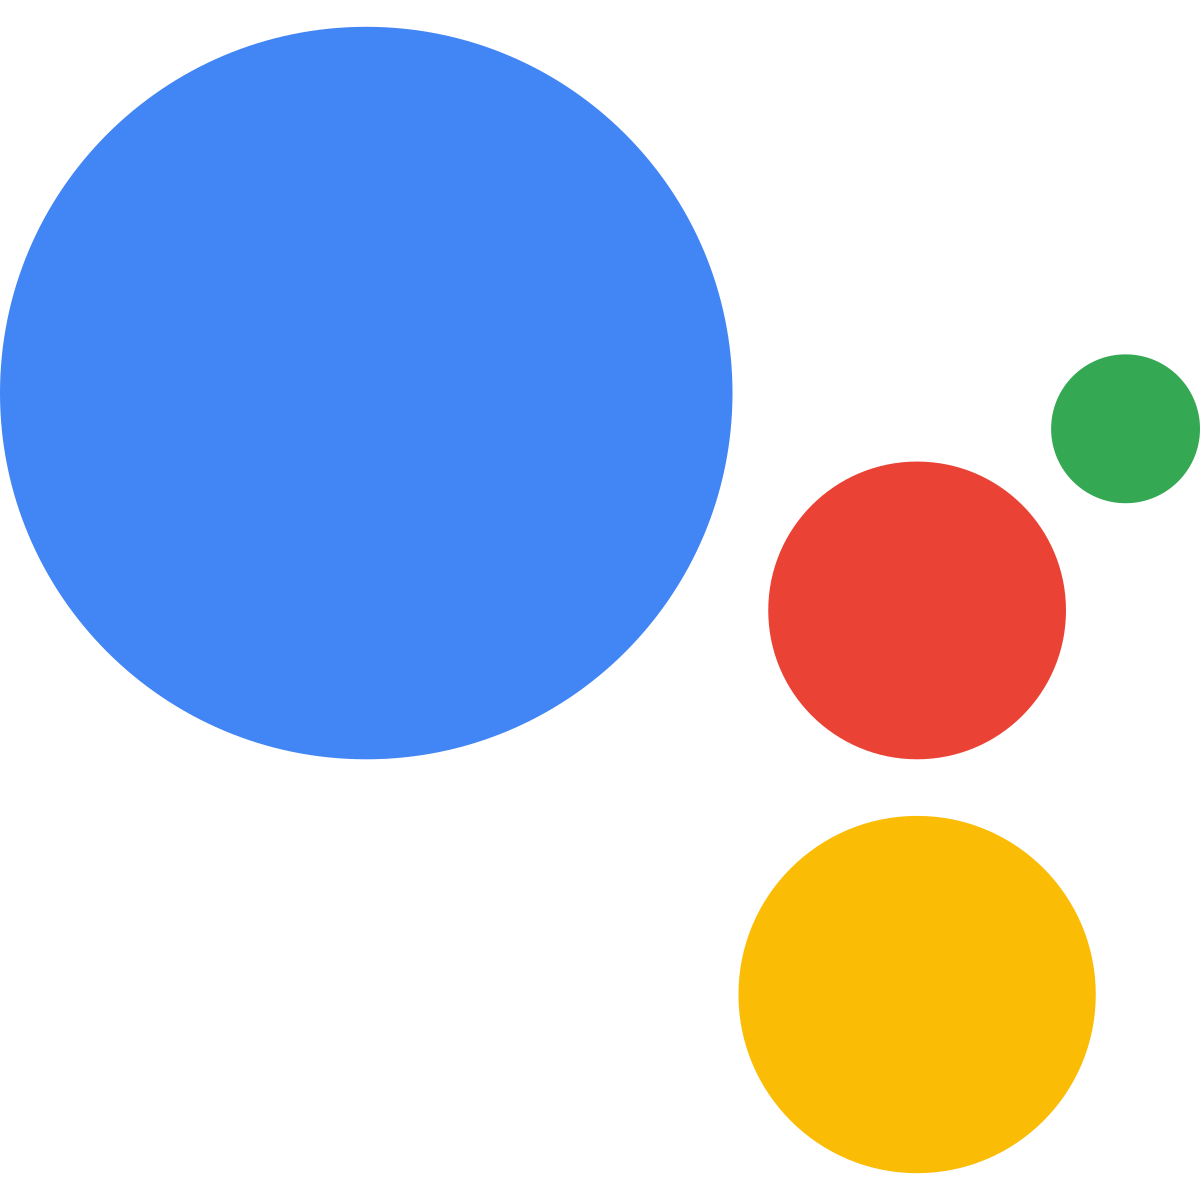 Setting clipart duplex. Google assistant wikipedia